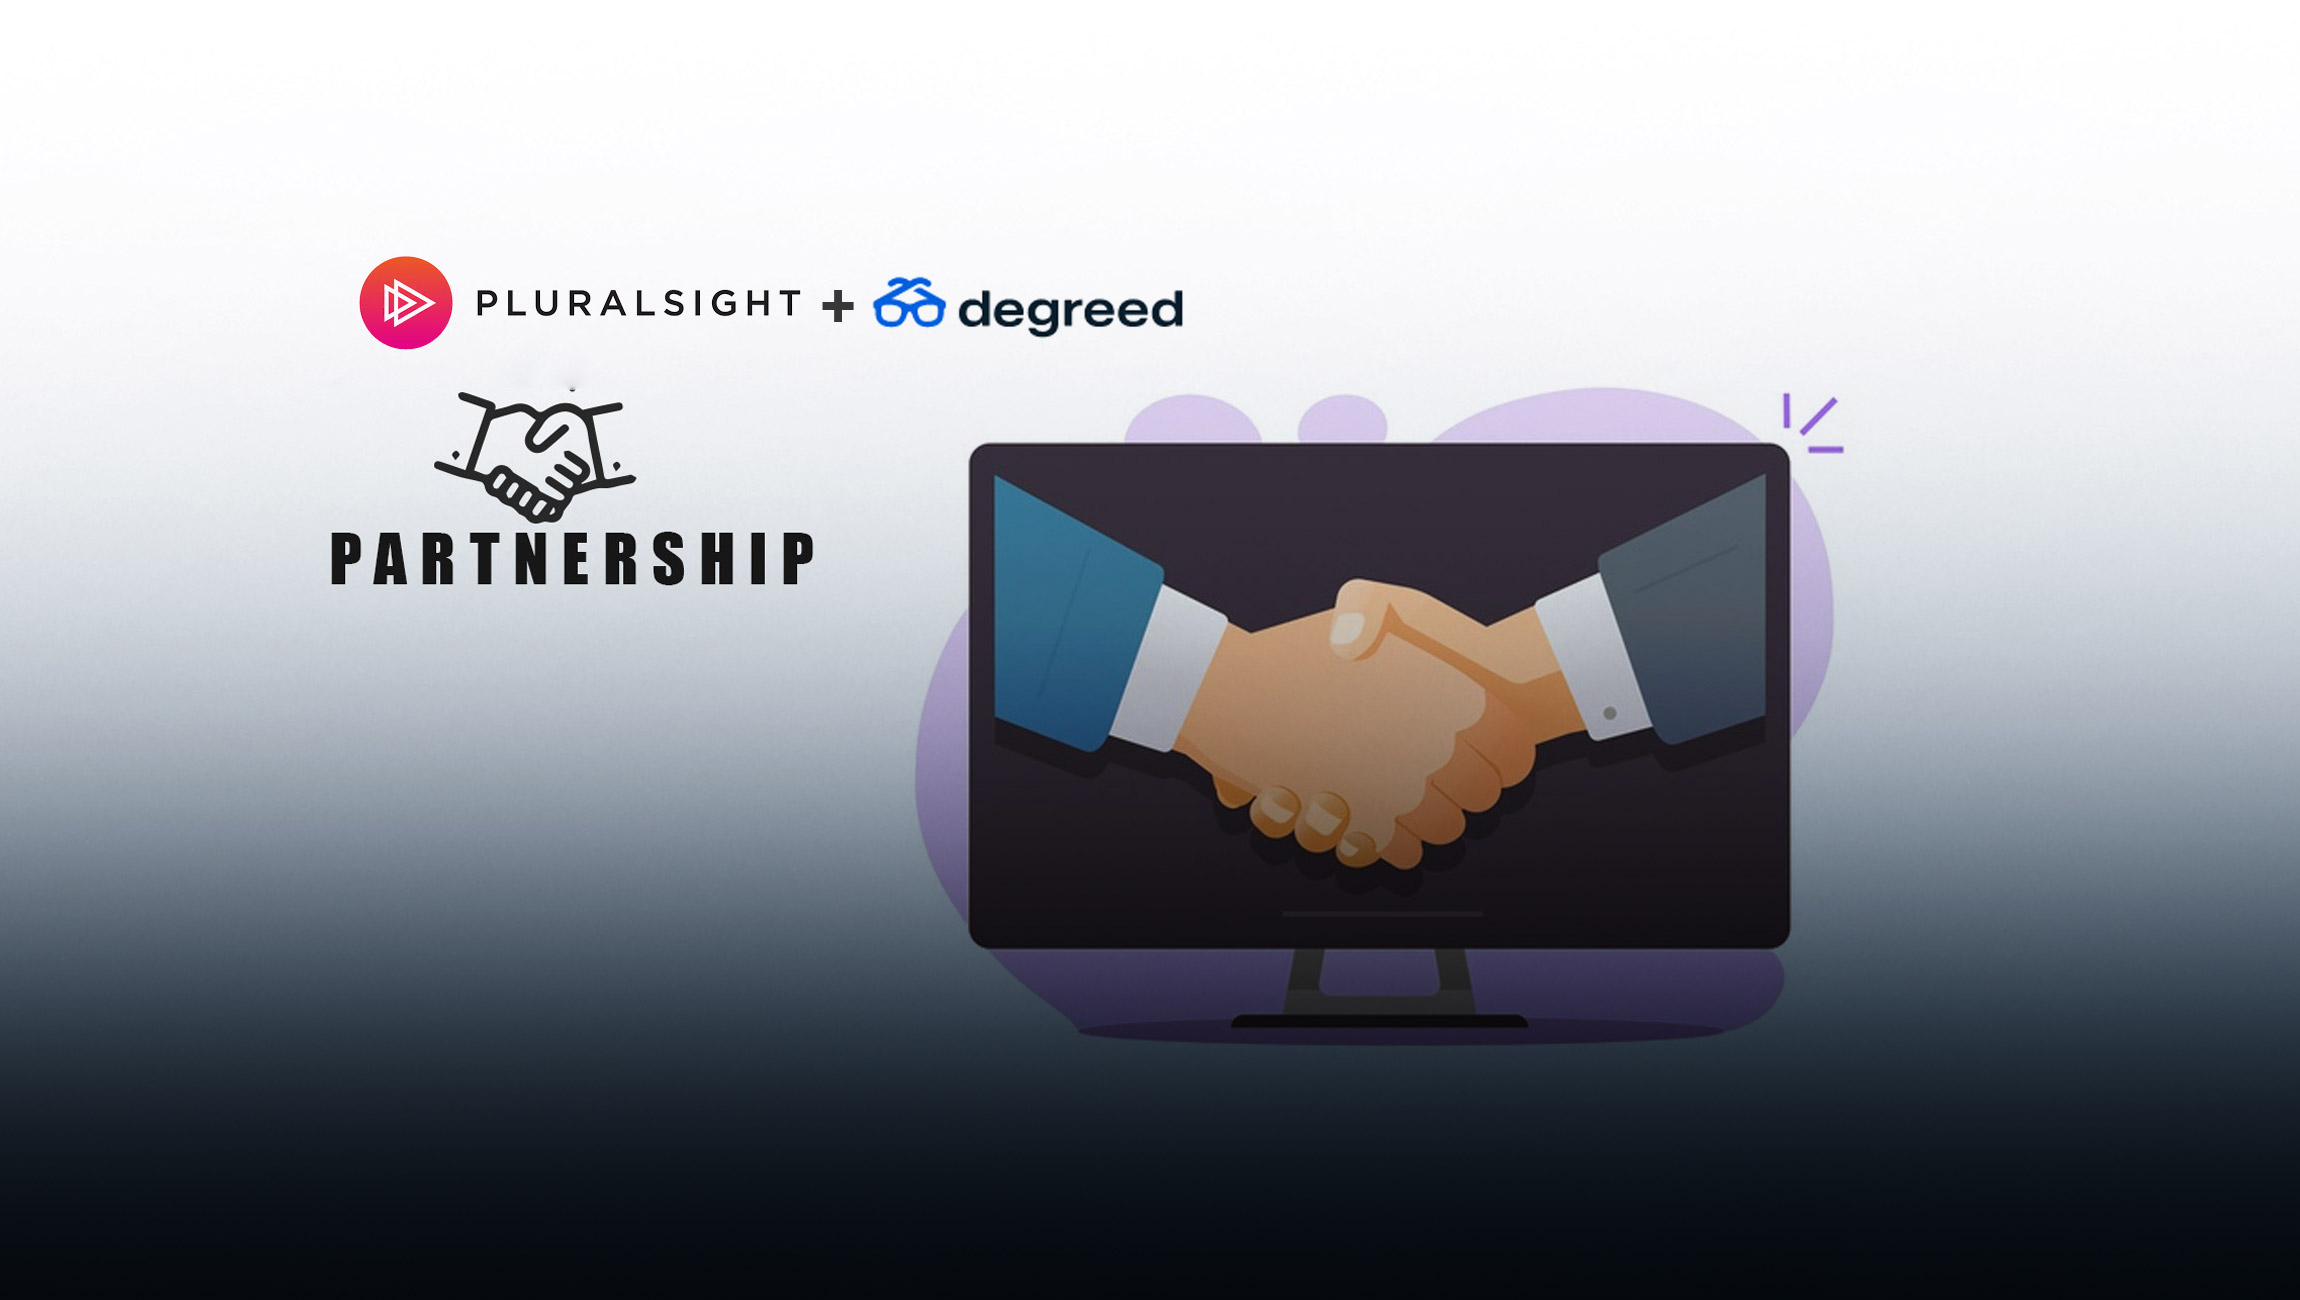 Pluralsight and Degreed Partner to Deliver Enhanced Visibility Into Technology Upskilling Programs